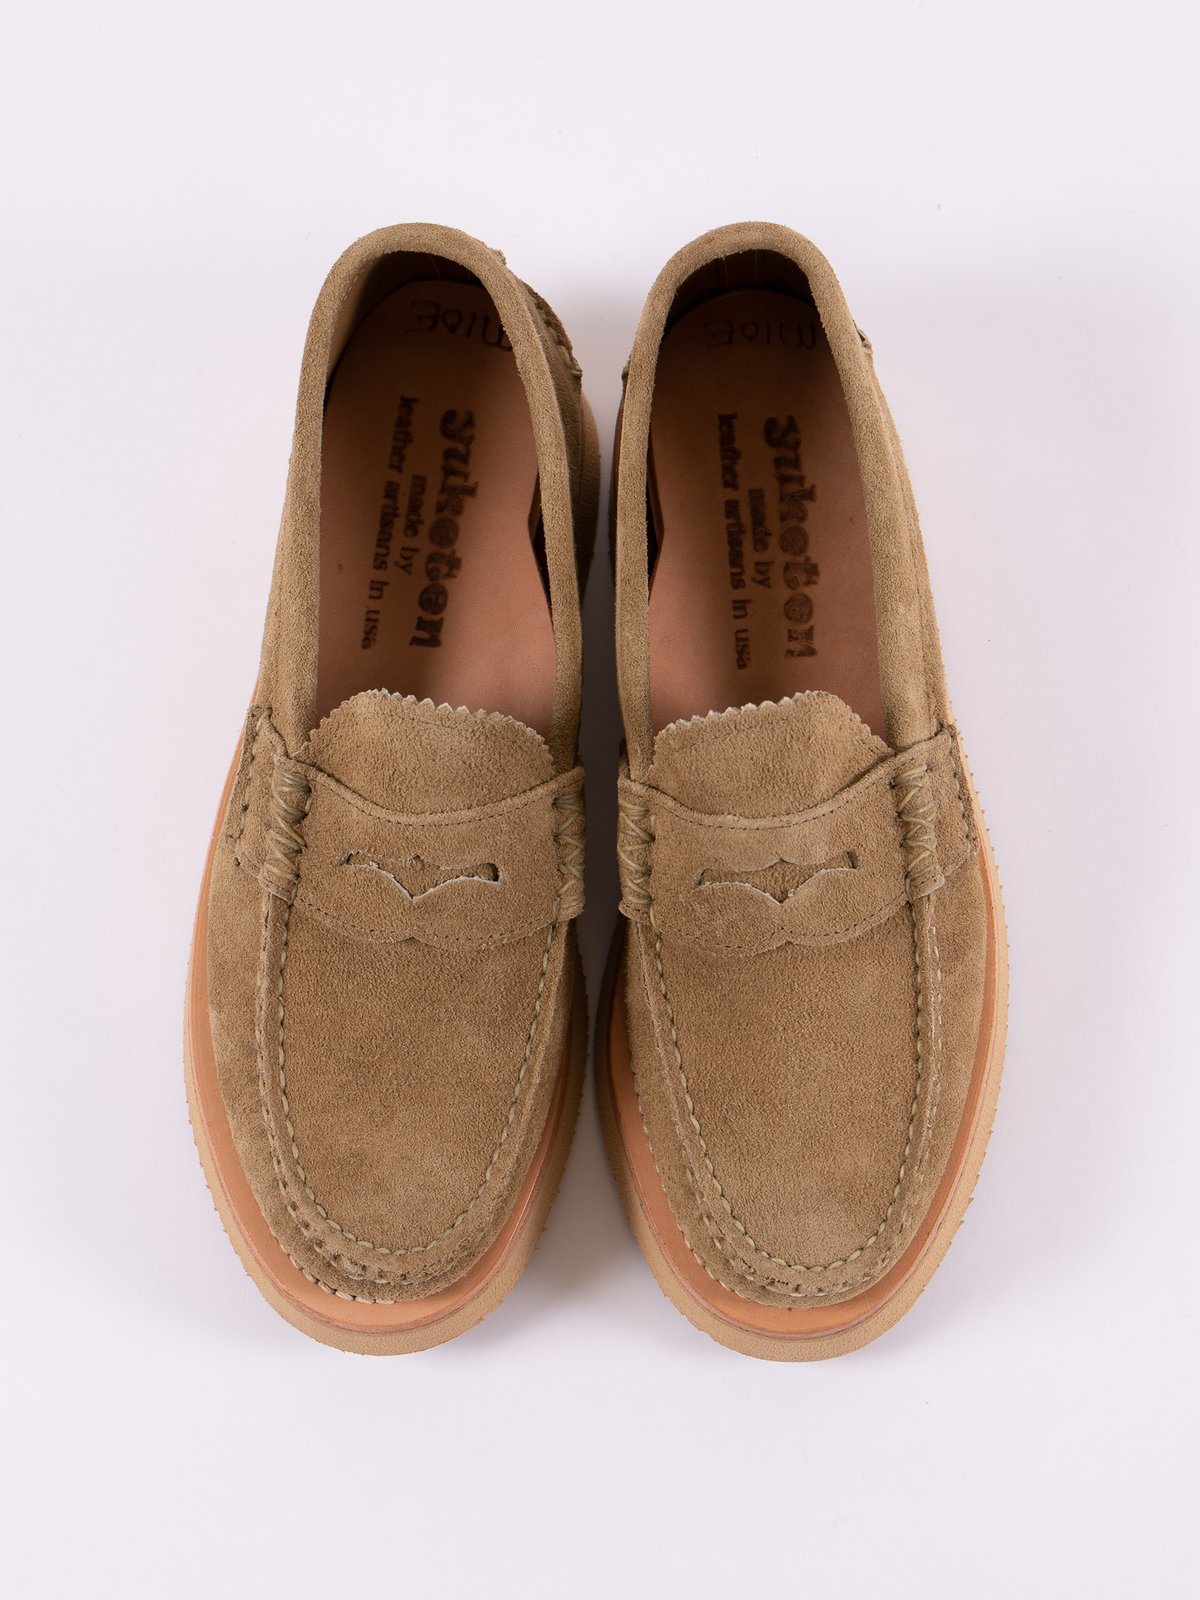 FO Khaki Loafer Shoe Exclusive - Image 6